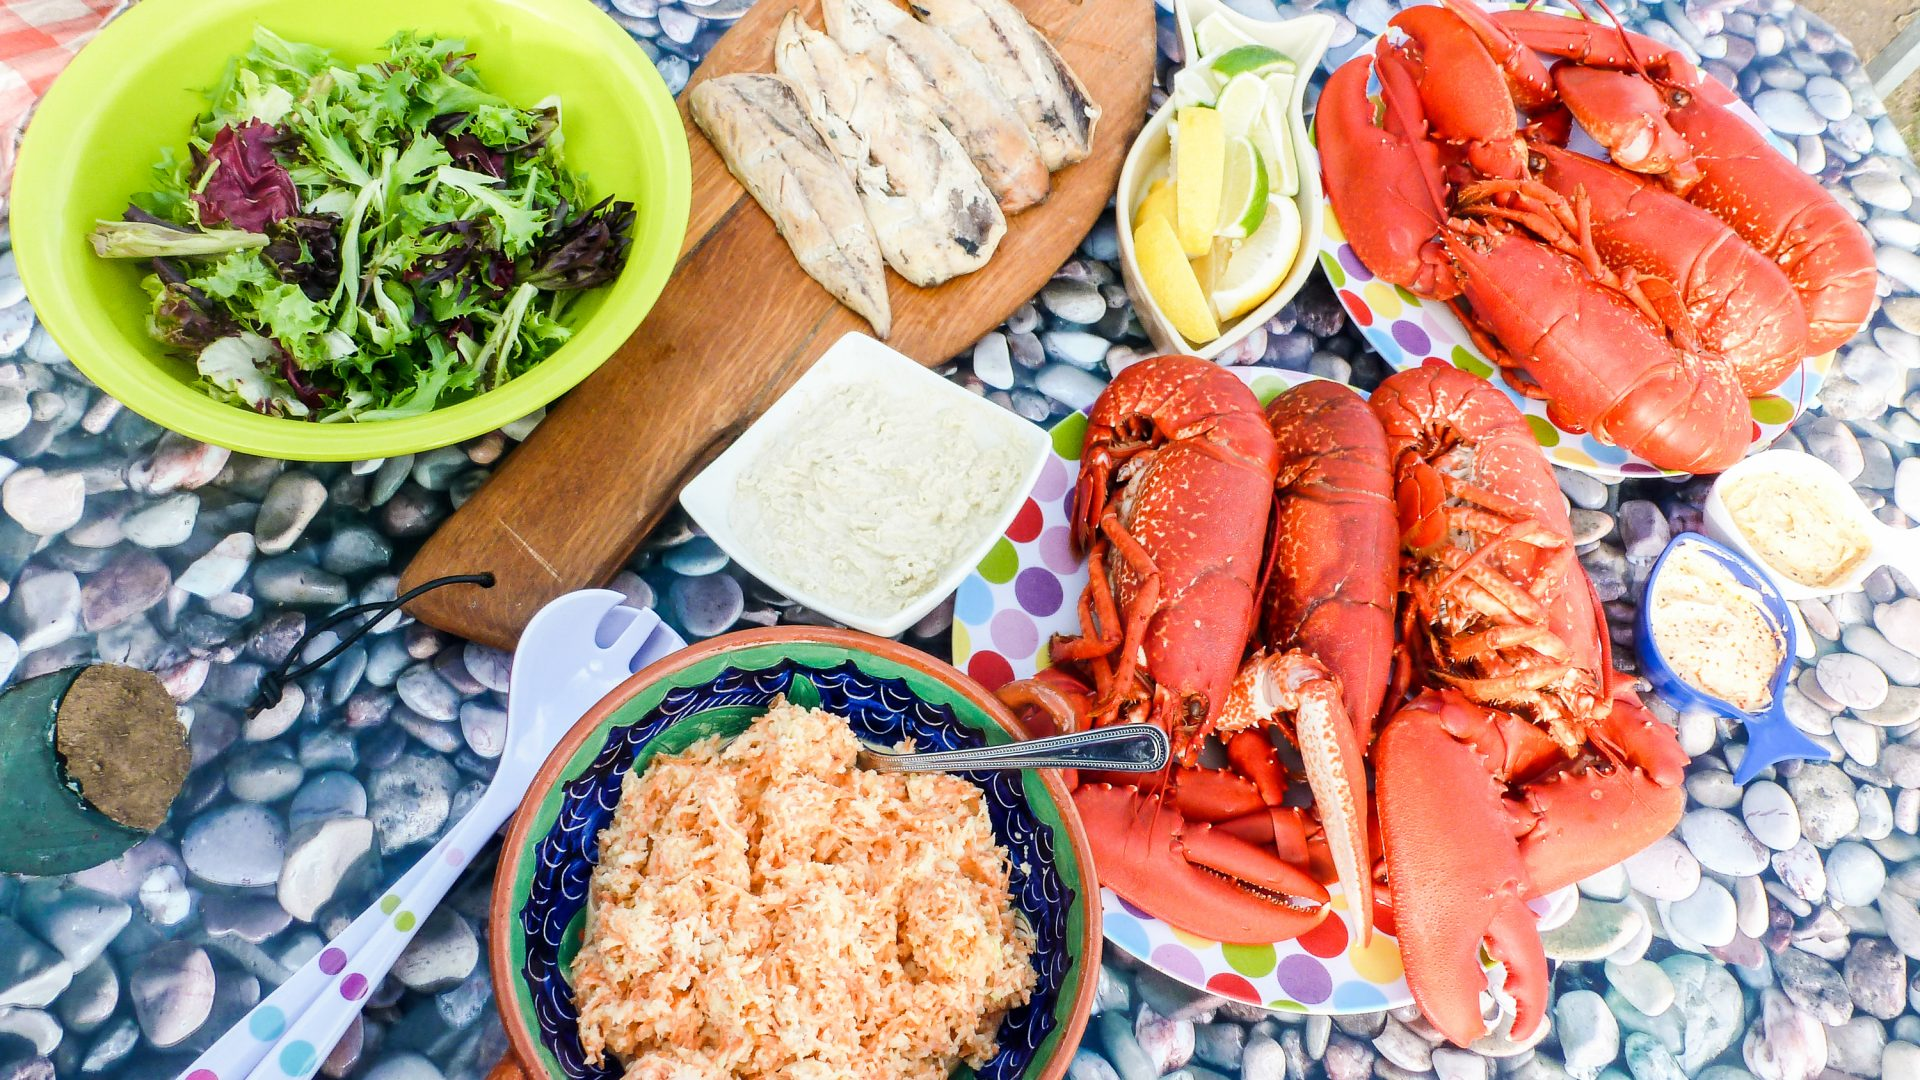 Experiencing nature: Picnic lunch with lobster